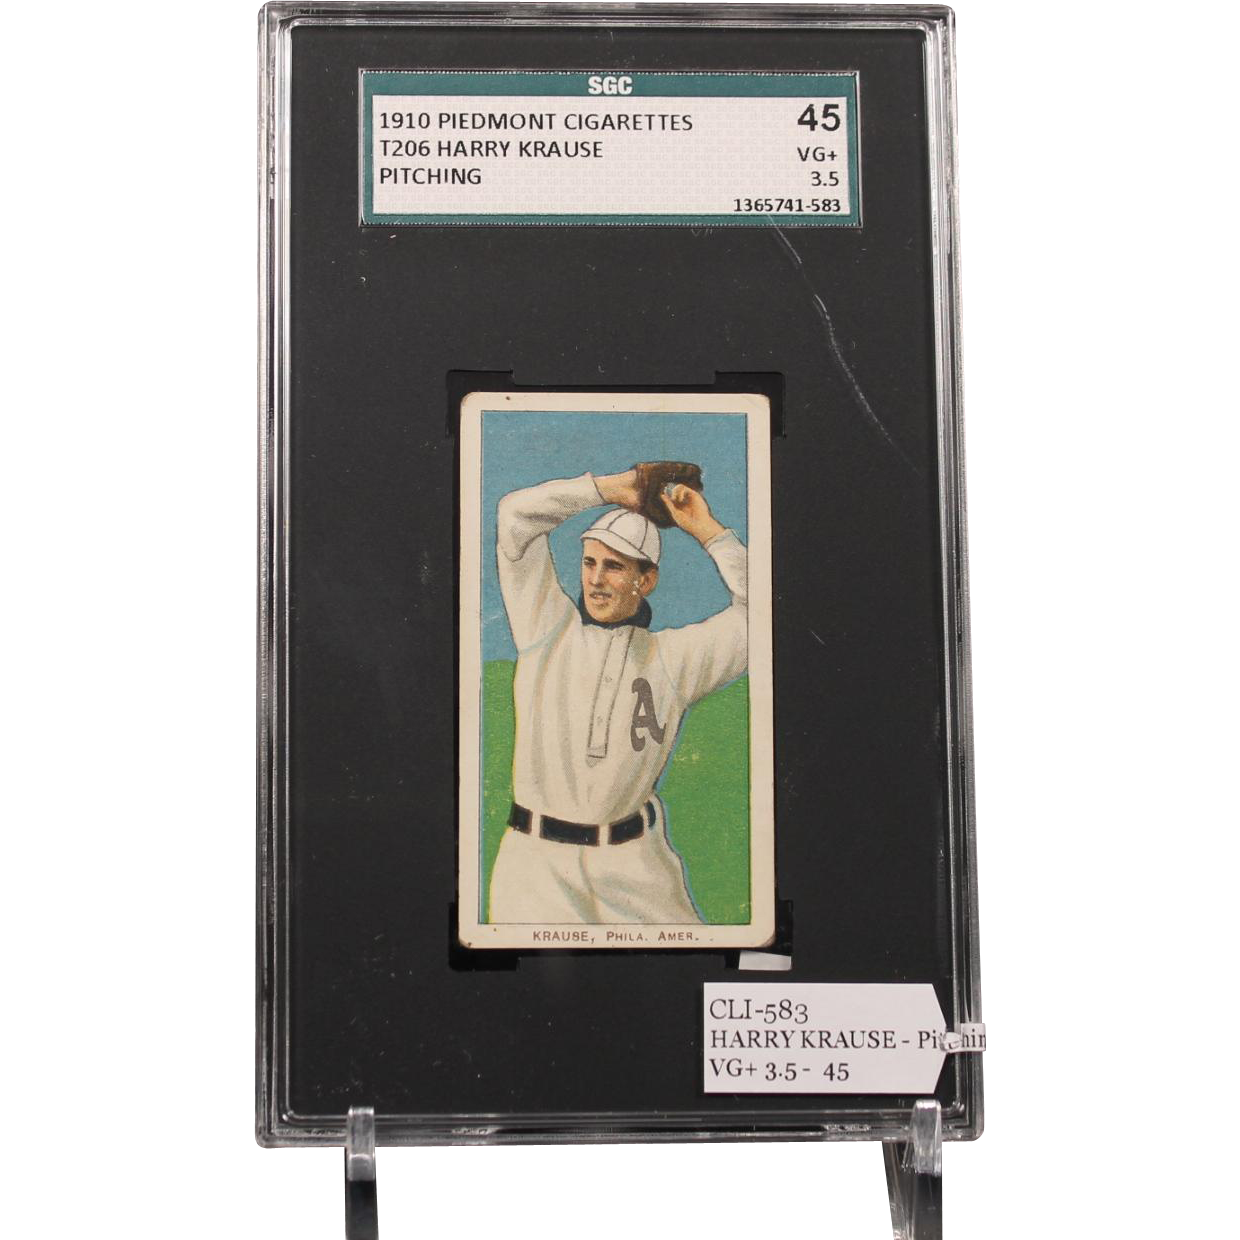 T206 HARRY KRAUSE - Pitching SGC grade 45 VG+ 3.5